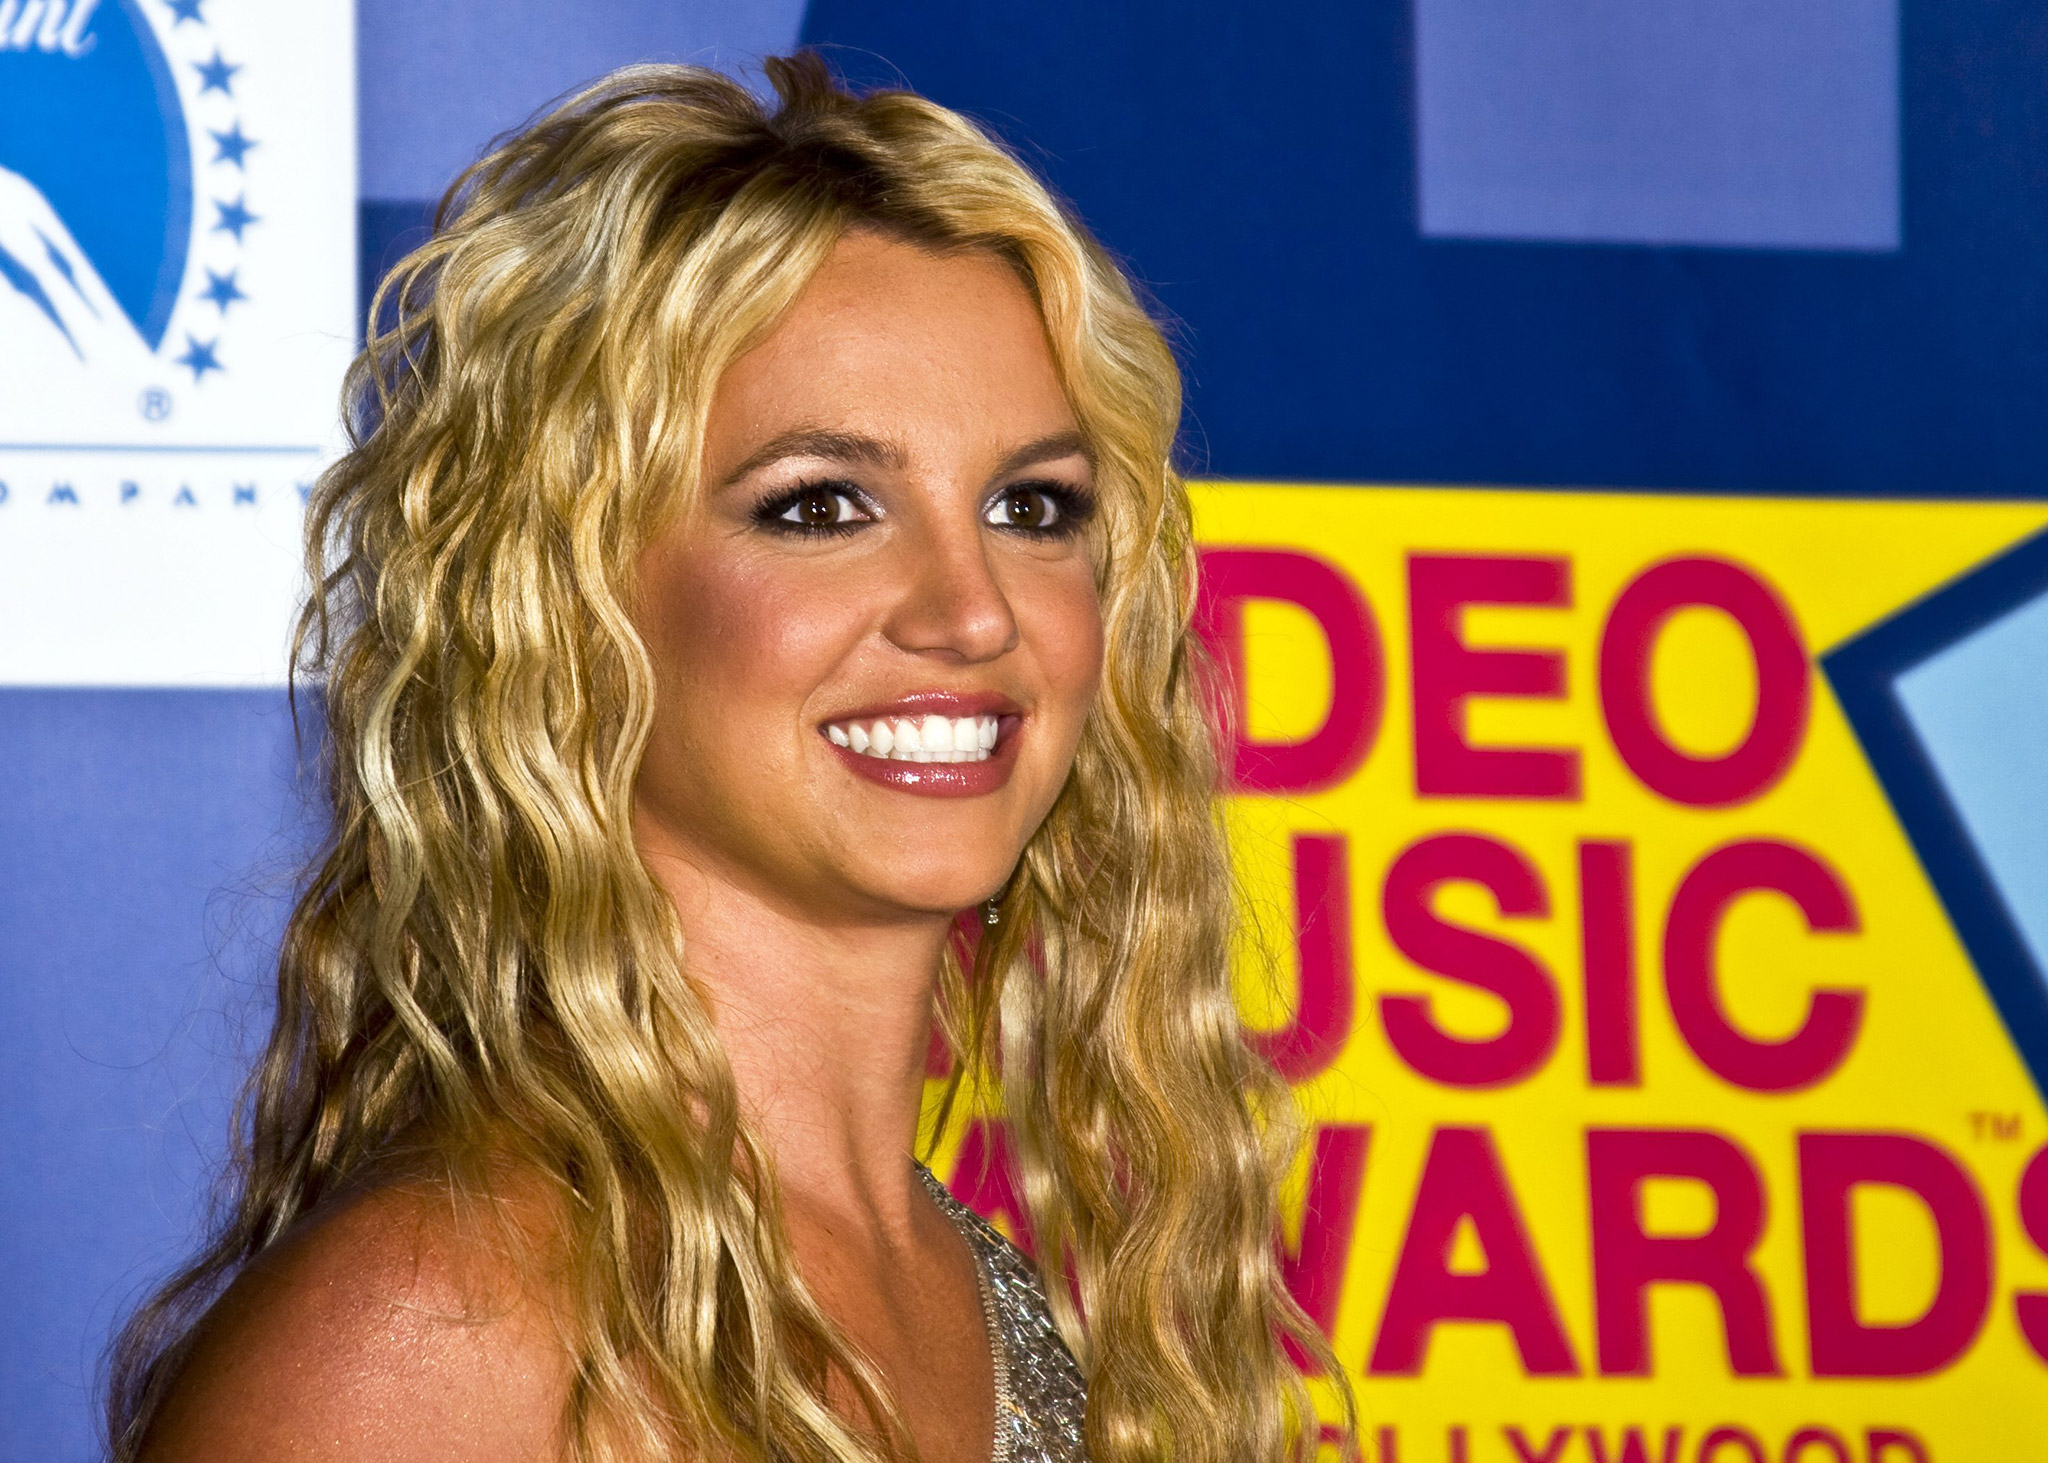 Frankie Lymon, Britney Spears, child stars, fame and childhood, celebrity news, celebrity culture, Britney Spears news, news on Britney Spears, entertainment news, Ellis Cashmore